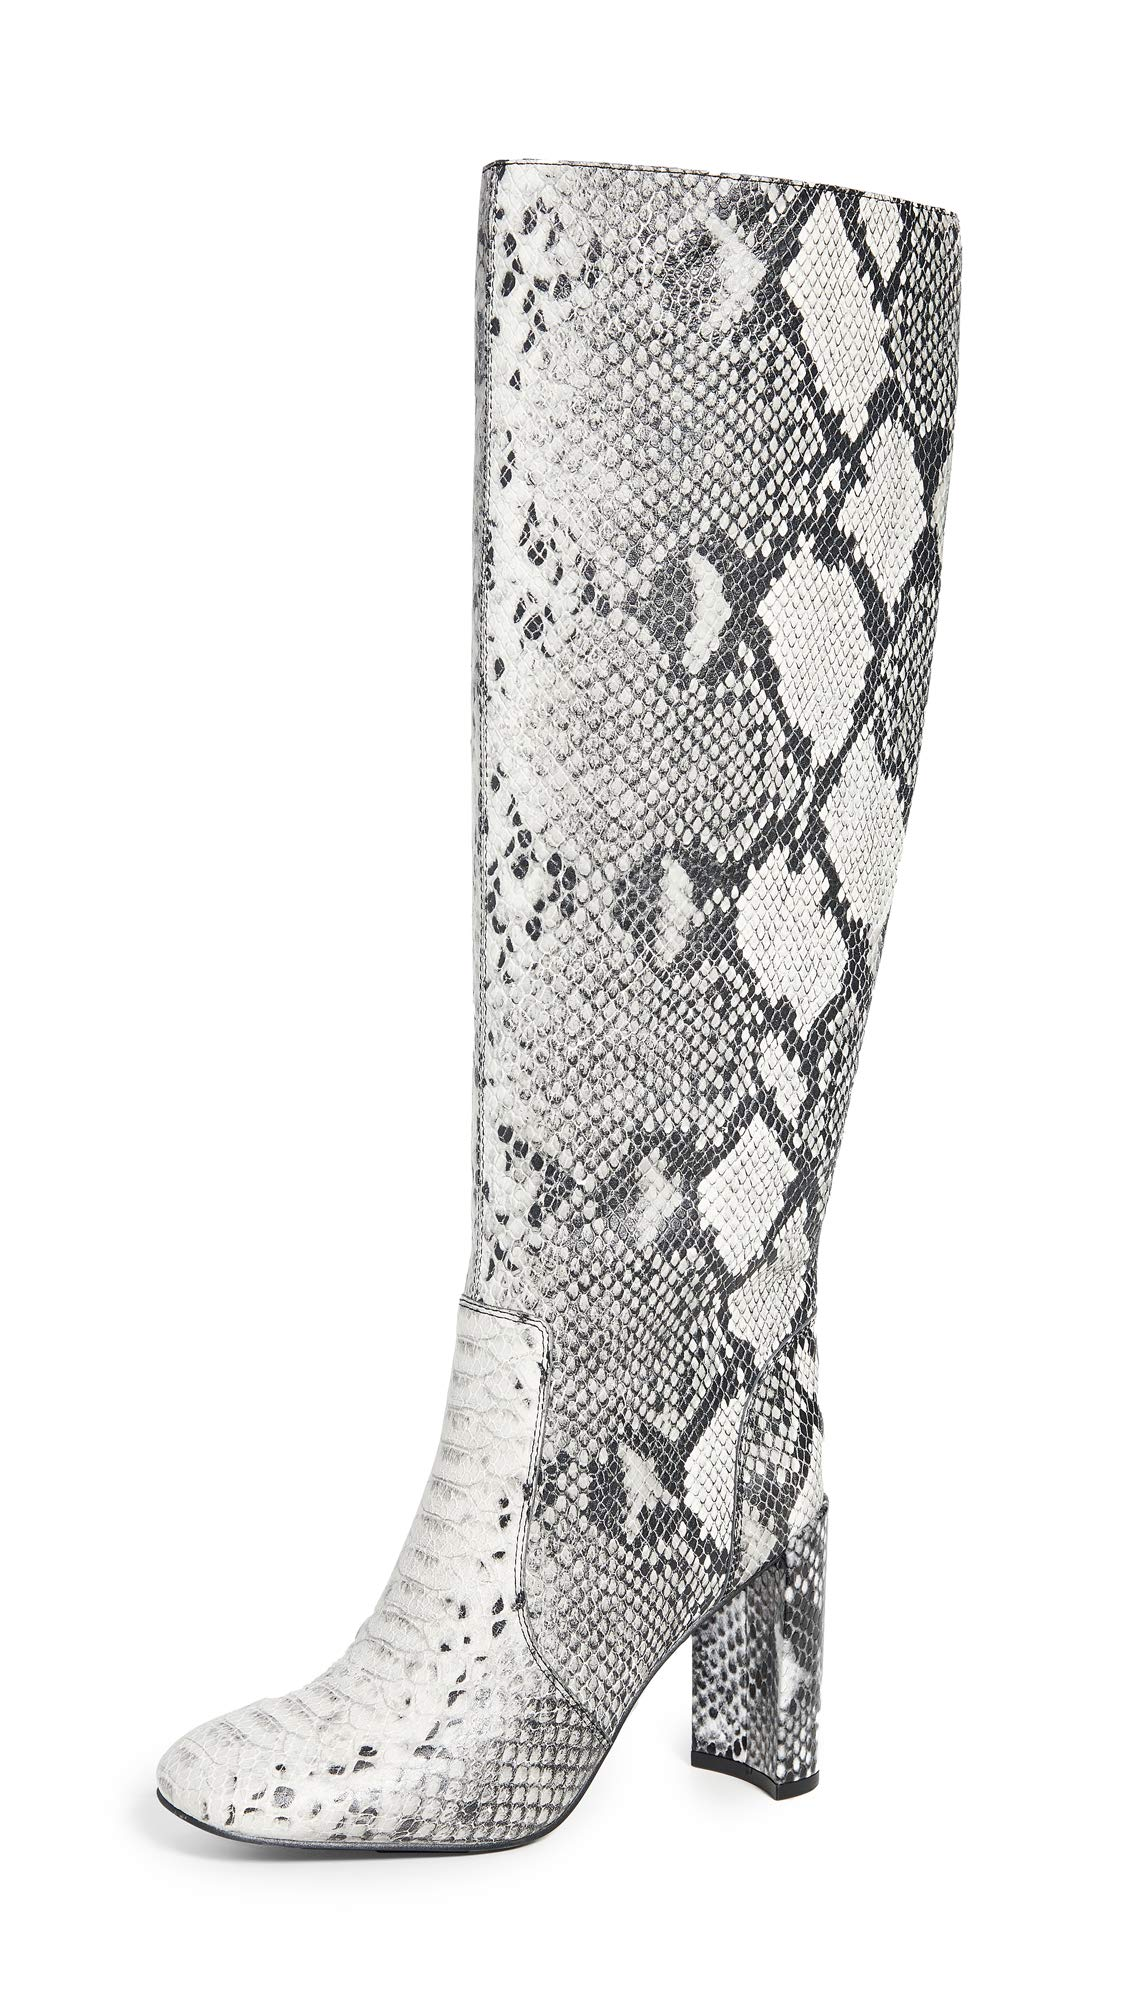 Jeffrey Campbell Women's Entuit Tall Boots, Black/White Snake, 9 Medium US by Jeffrey Campbell